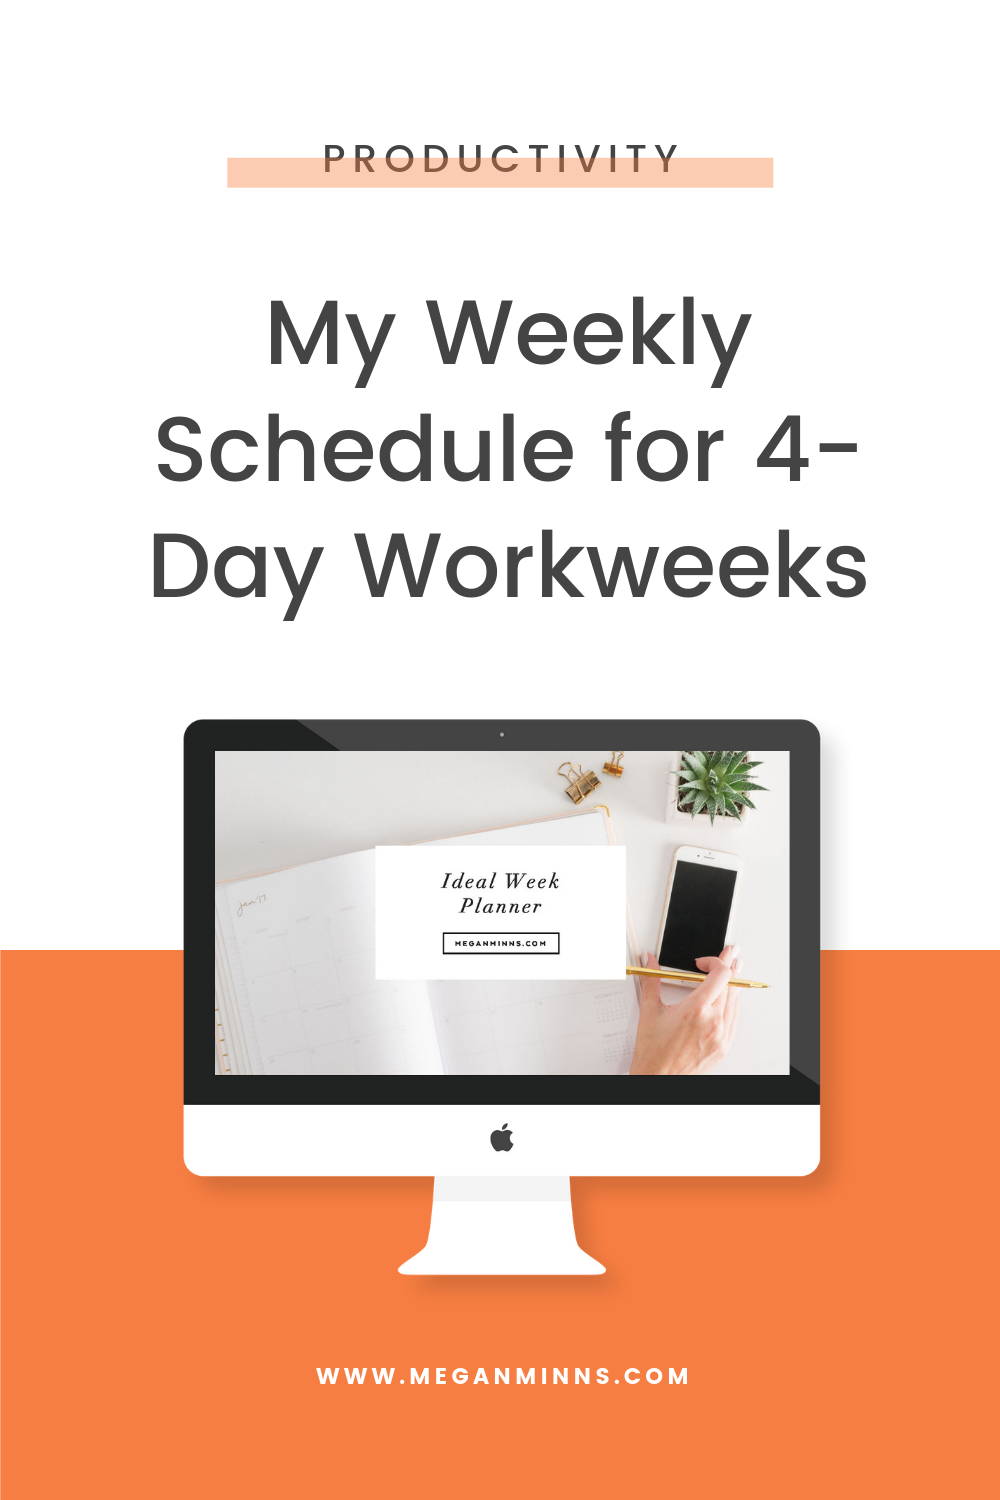 Working all day, 5 days a week can leave you feeling depleted, frazzled, and without time for hobbies, personal projects, or social events. I knew I didn't want that for me and my business, which is why I'm sharing exactly how I created a 4-day workweek that's just as, if not more effective than working all 5 weekdays.  You'll get all the steps do create your own ideal week in this episode, and don't forget to download your FREE Ideal Week Planner!  DOWNLOAD THE FREE IDEAL WEEK PLANNER HERE 🗓https://meganminns.com/idealweek  READ THE FULL BLOG POST ➡️ https://meganminns.com/blog/weekly-schedule-4-day-workweek